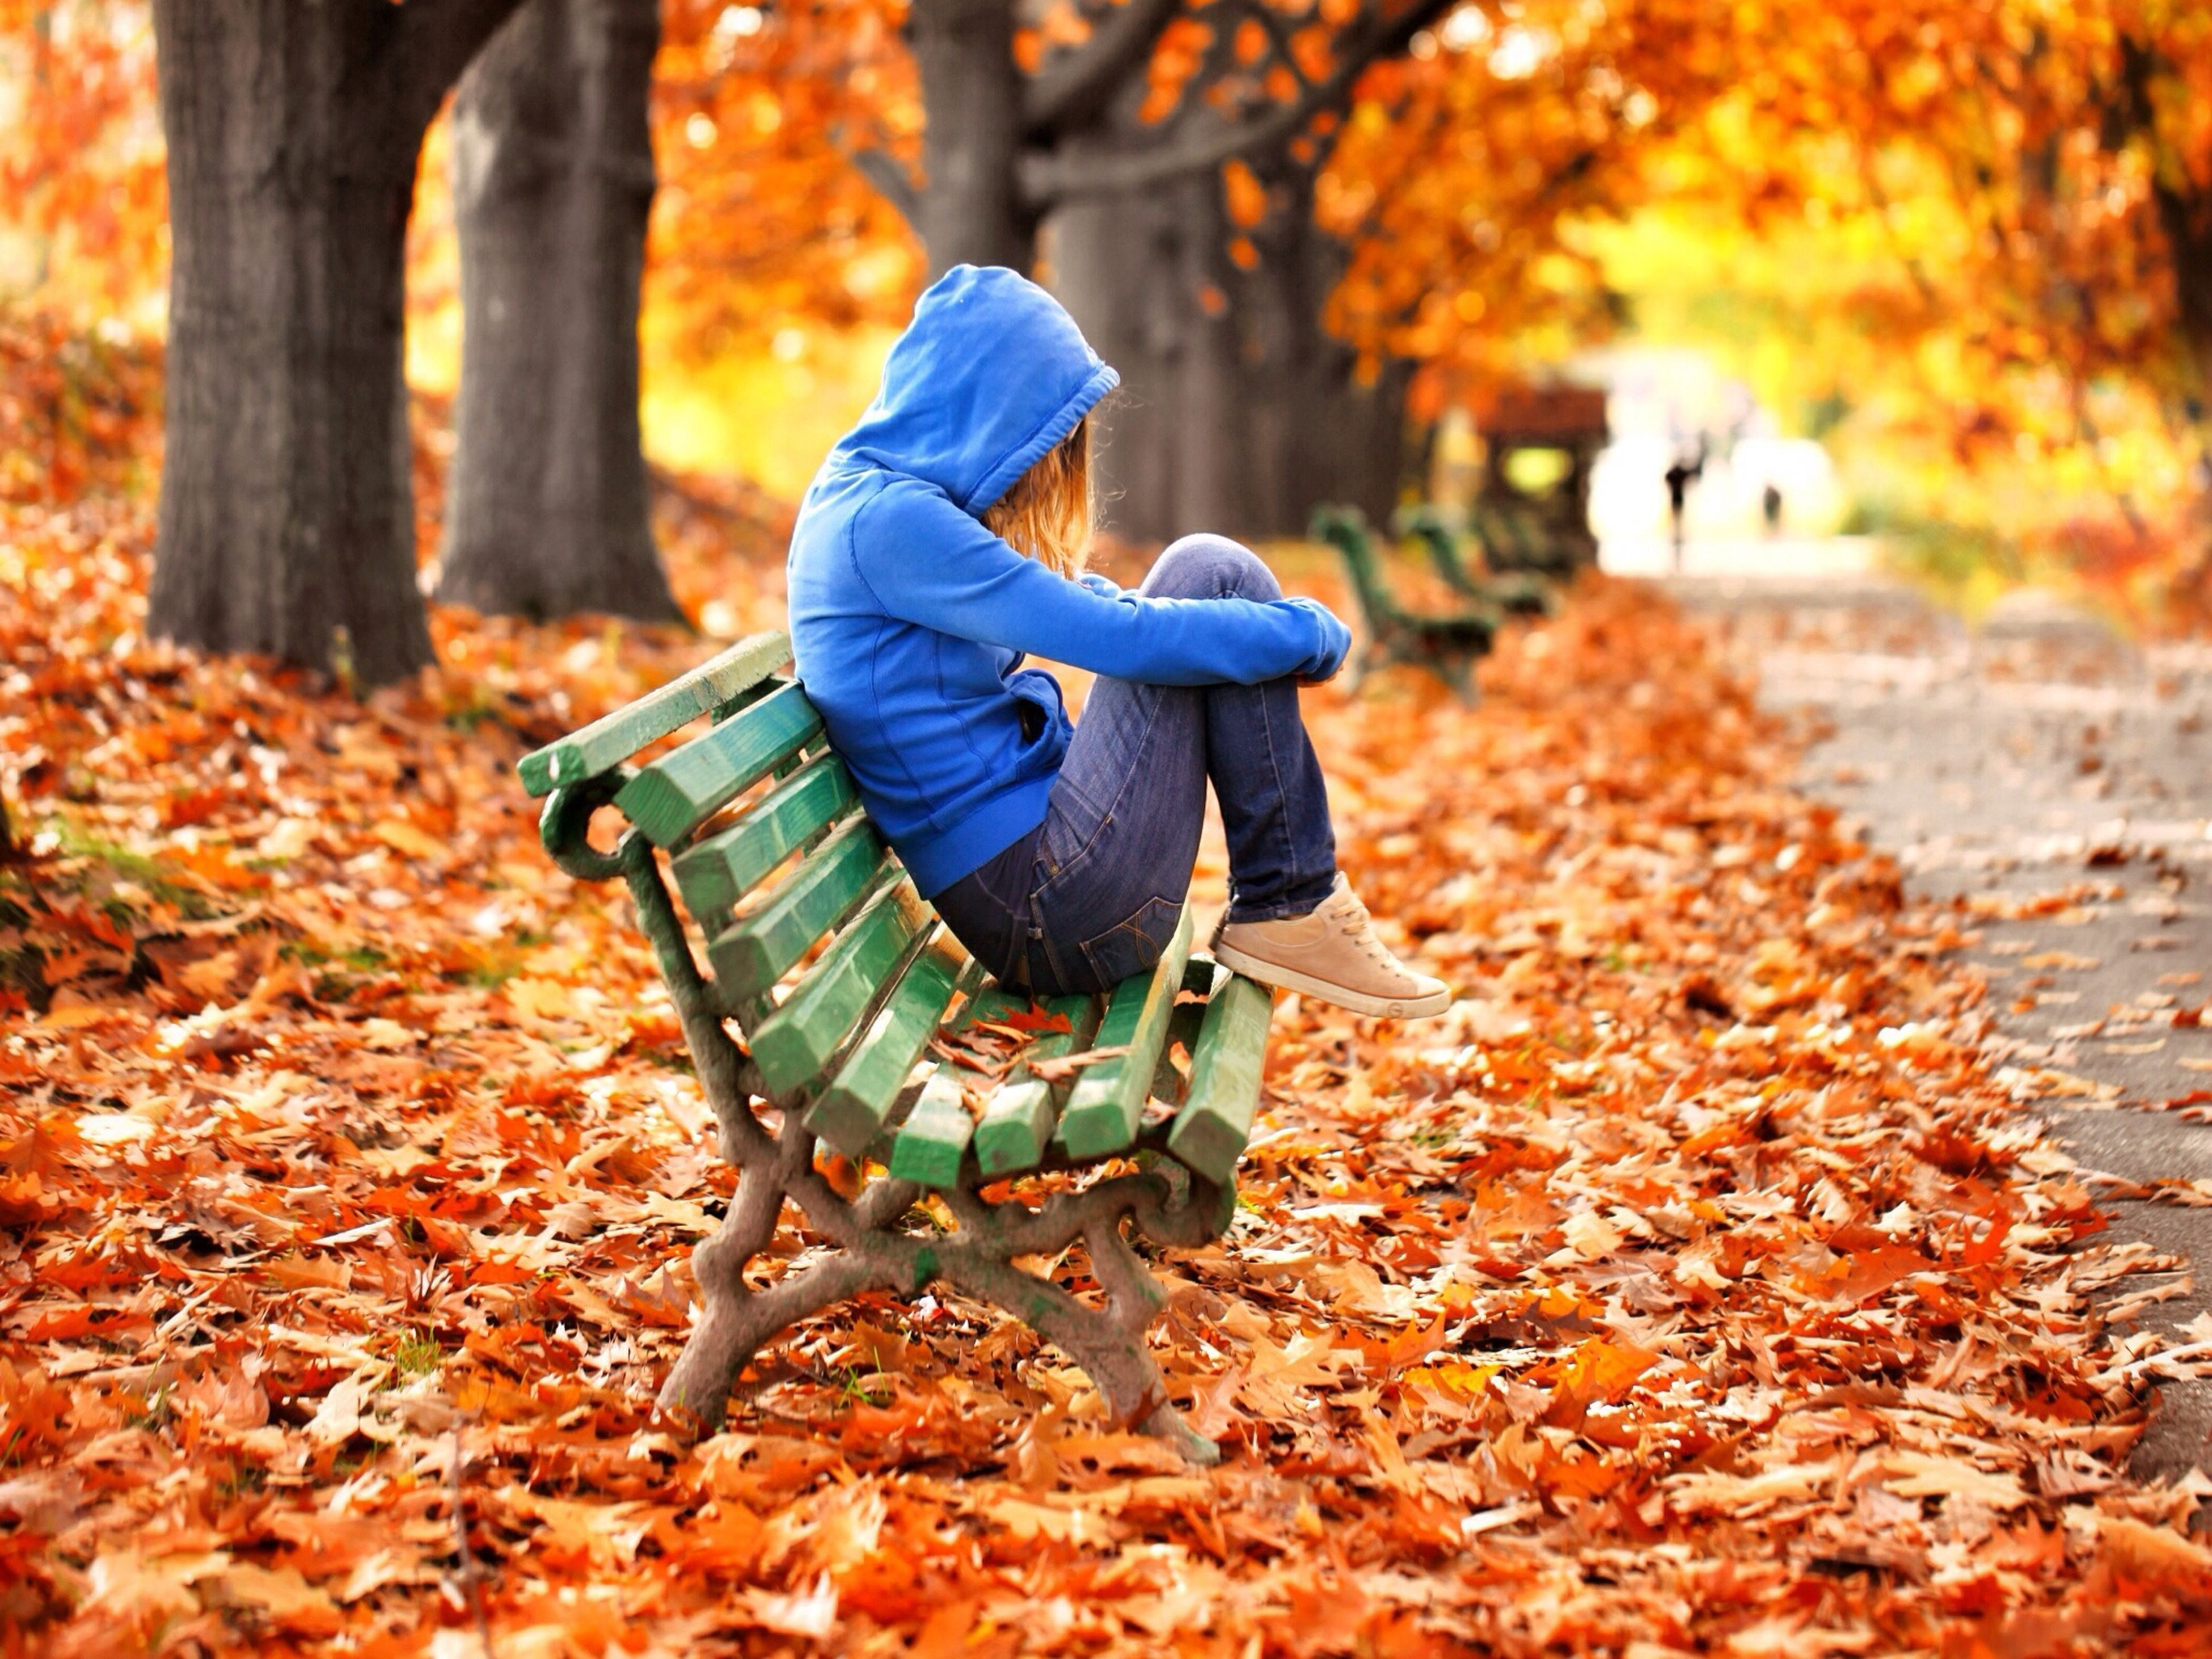 autumn, change, season, leaf, focus on foreground, lifestyles, leaves, leisure activity, dry, rear view, casual clothing, orange color, selective focus, nature, full length, day, men, field